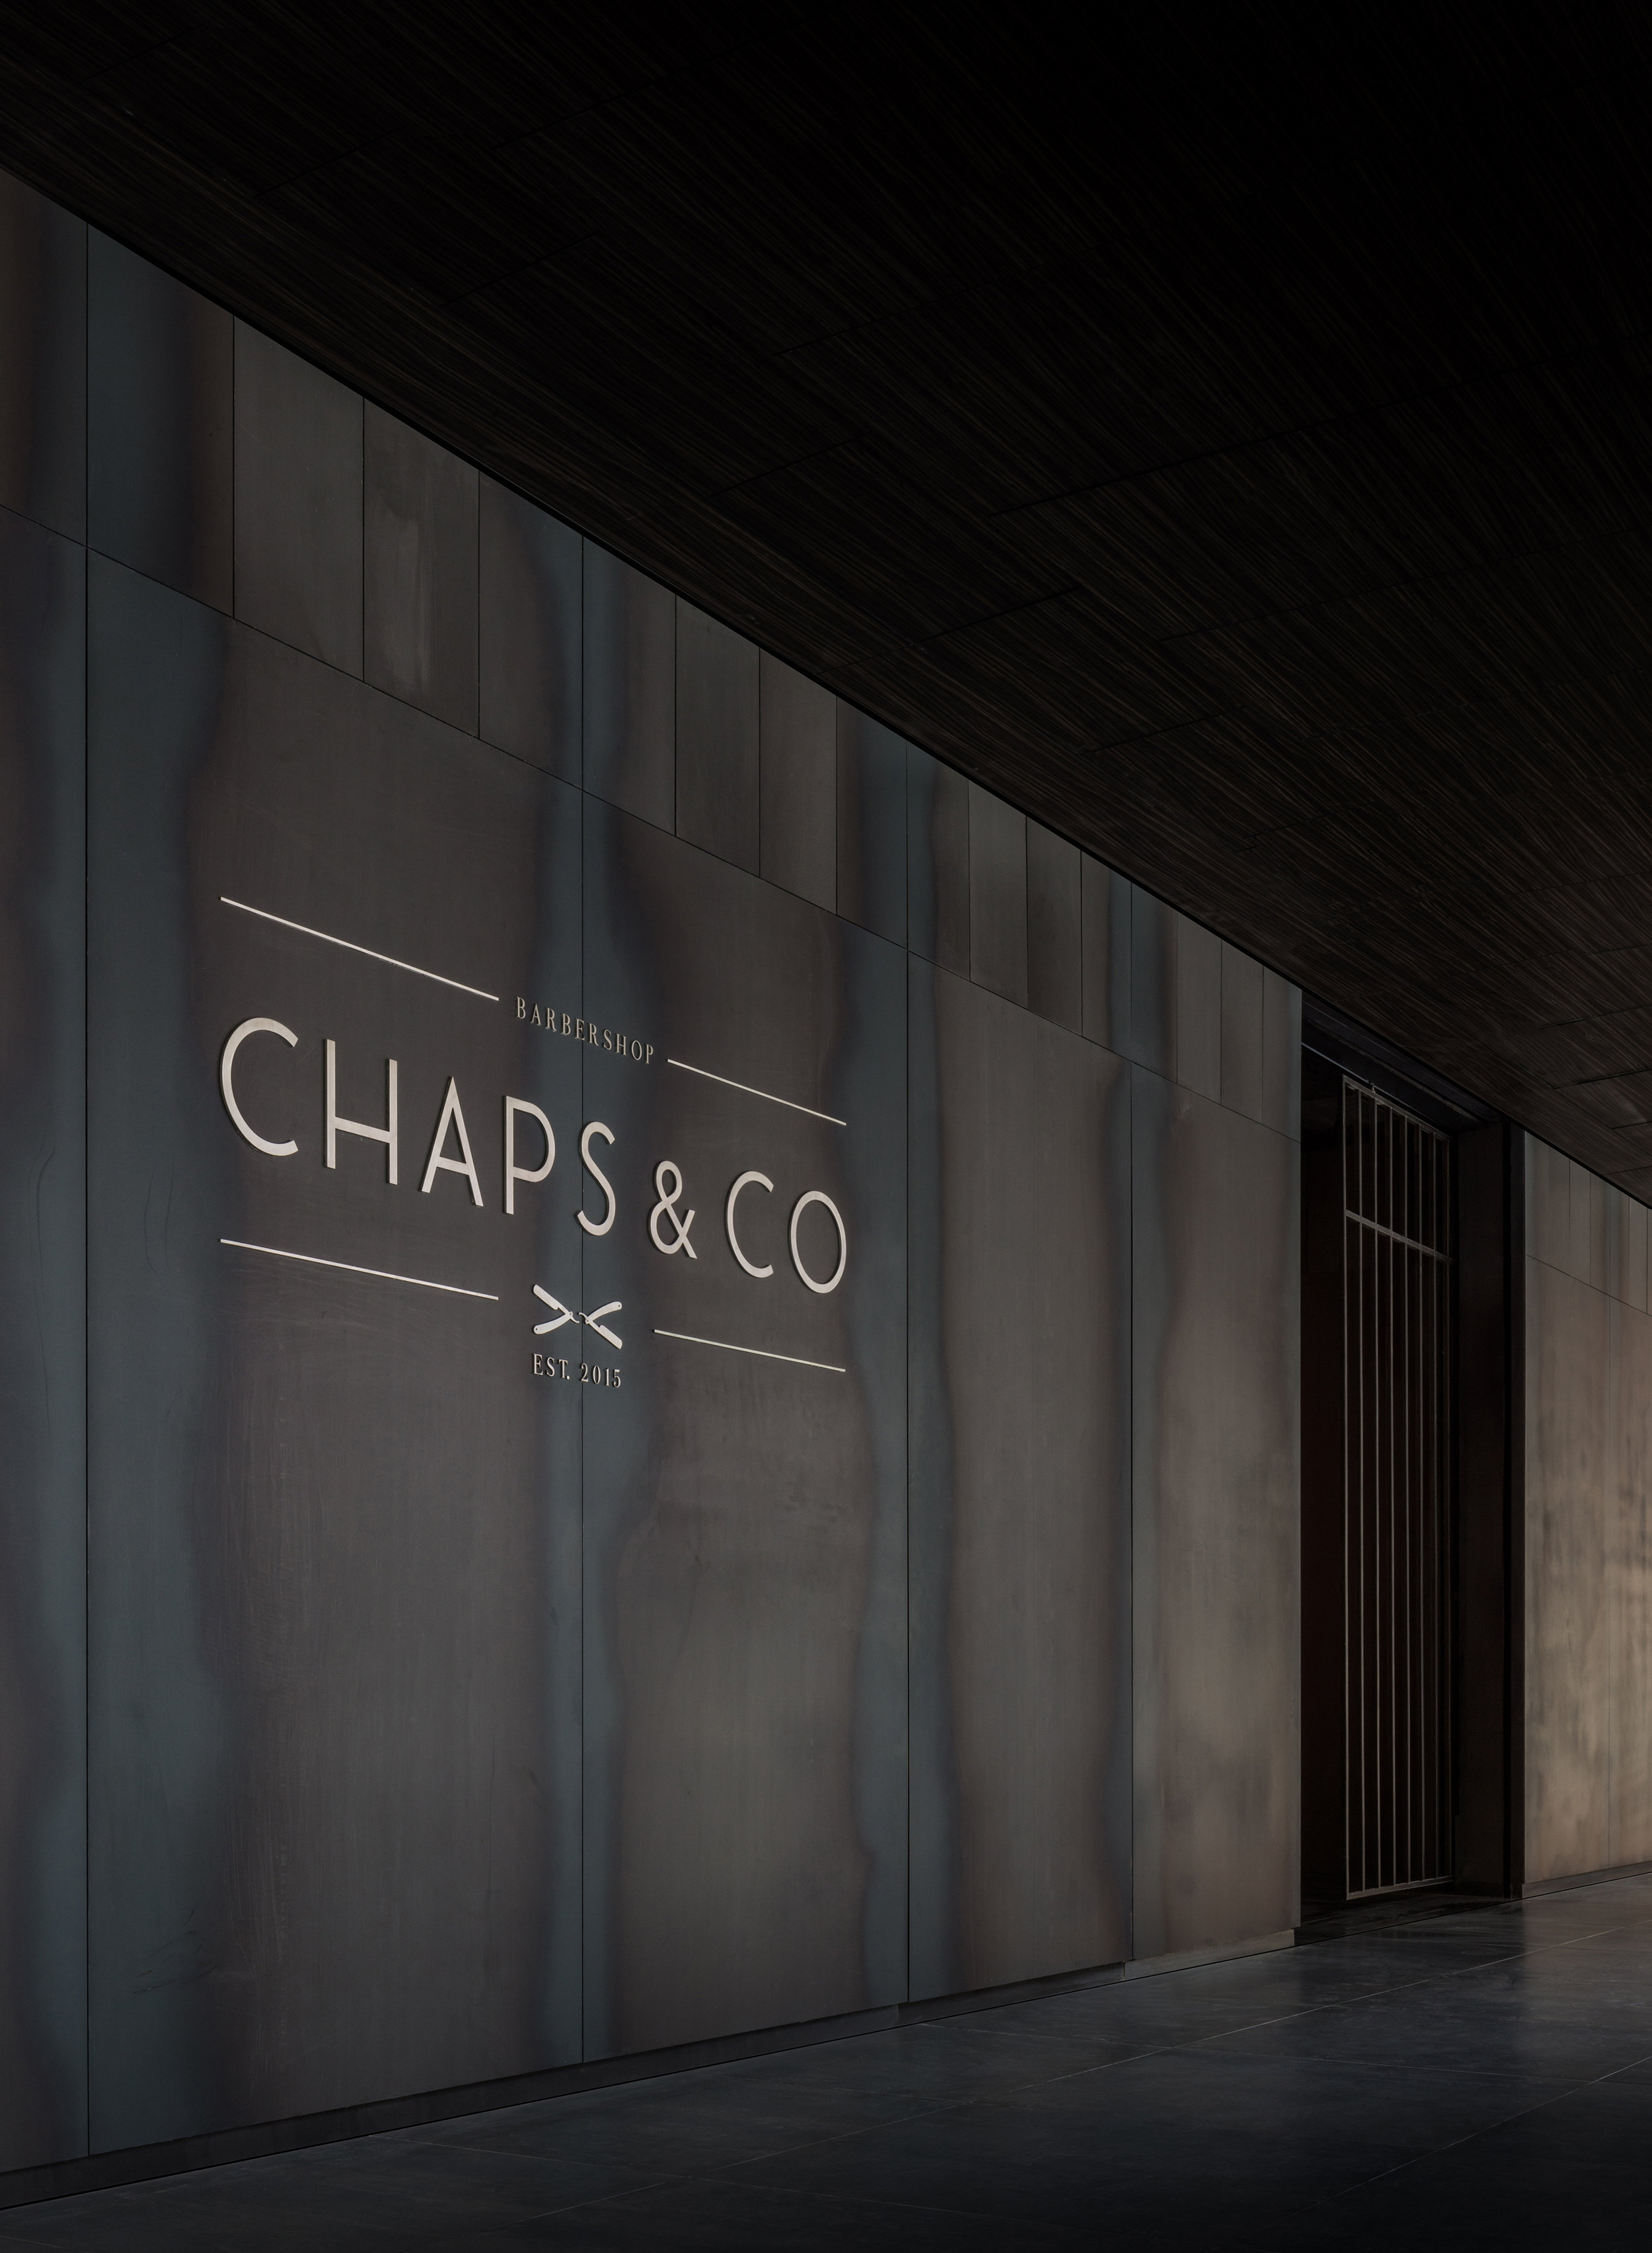 Chaps & Co-d3-Dubai-Barbershop-Shopfront-Steel-Design-Interior-Architect.jpg